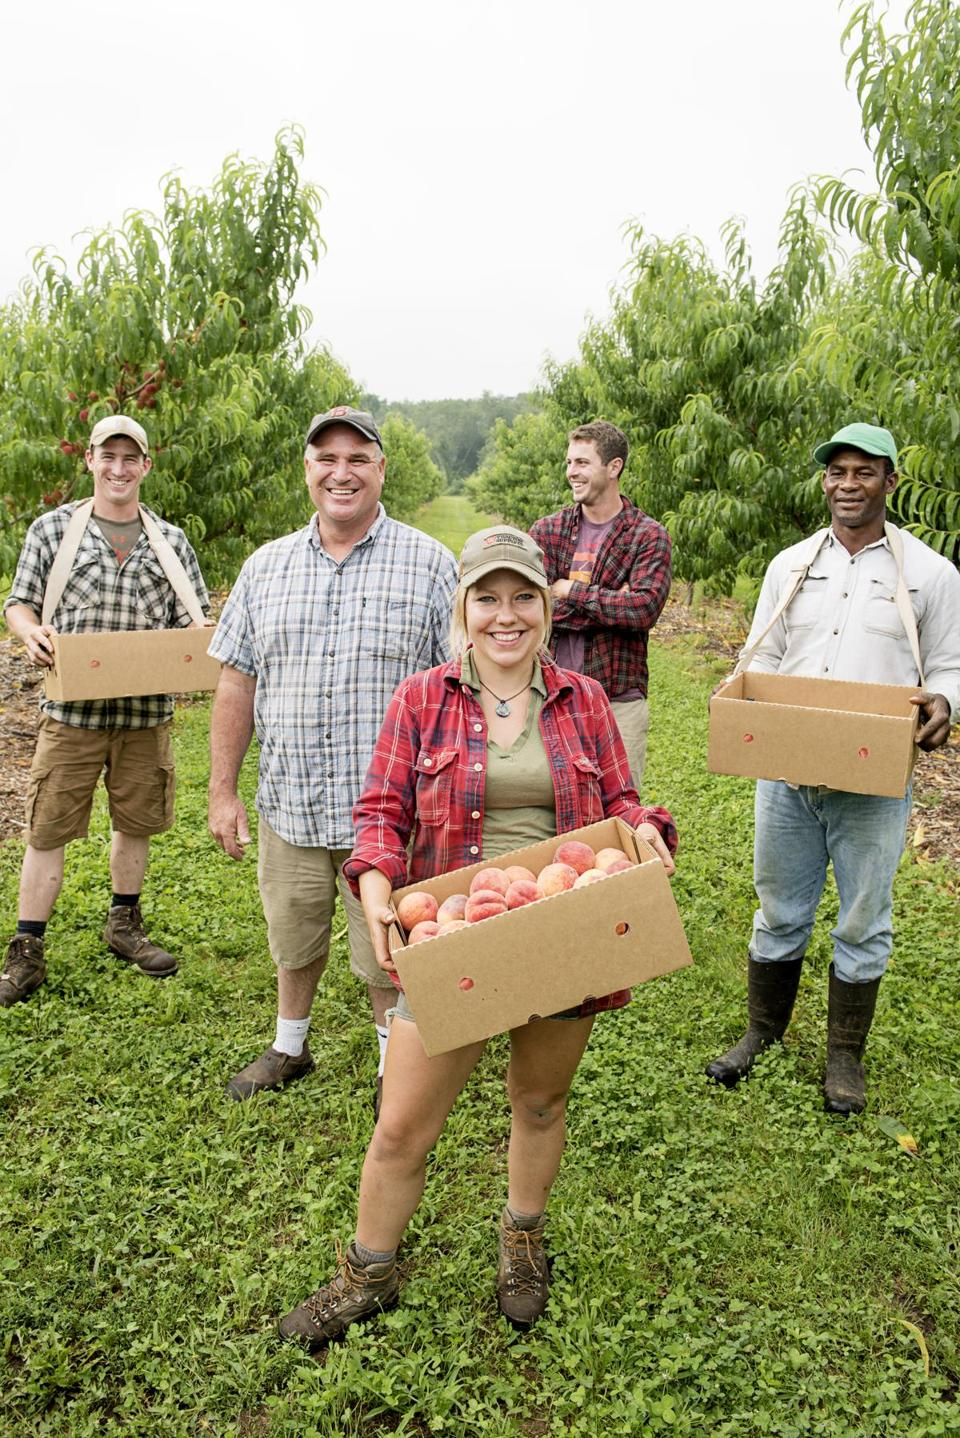 Jim Ward of Ward's Berry Farm is a fan of peaches fresh from the tree. Ward (second from left) with employees at farm.